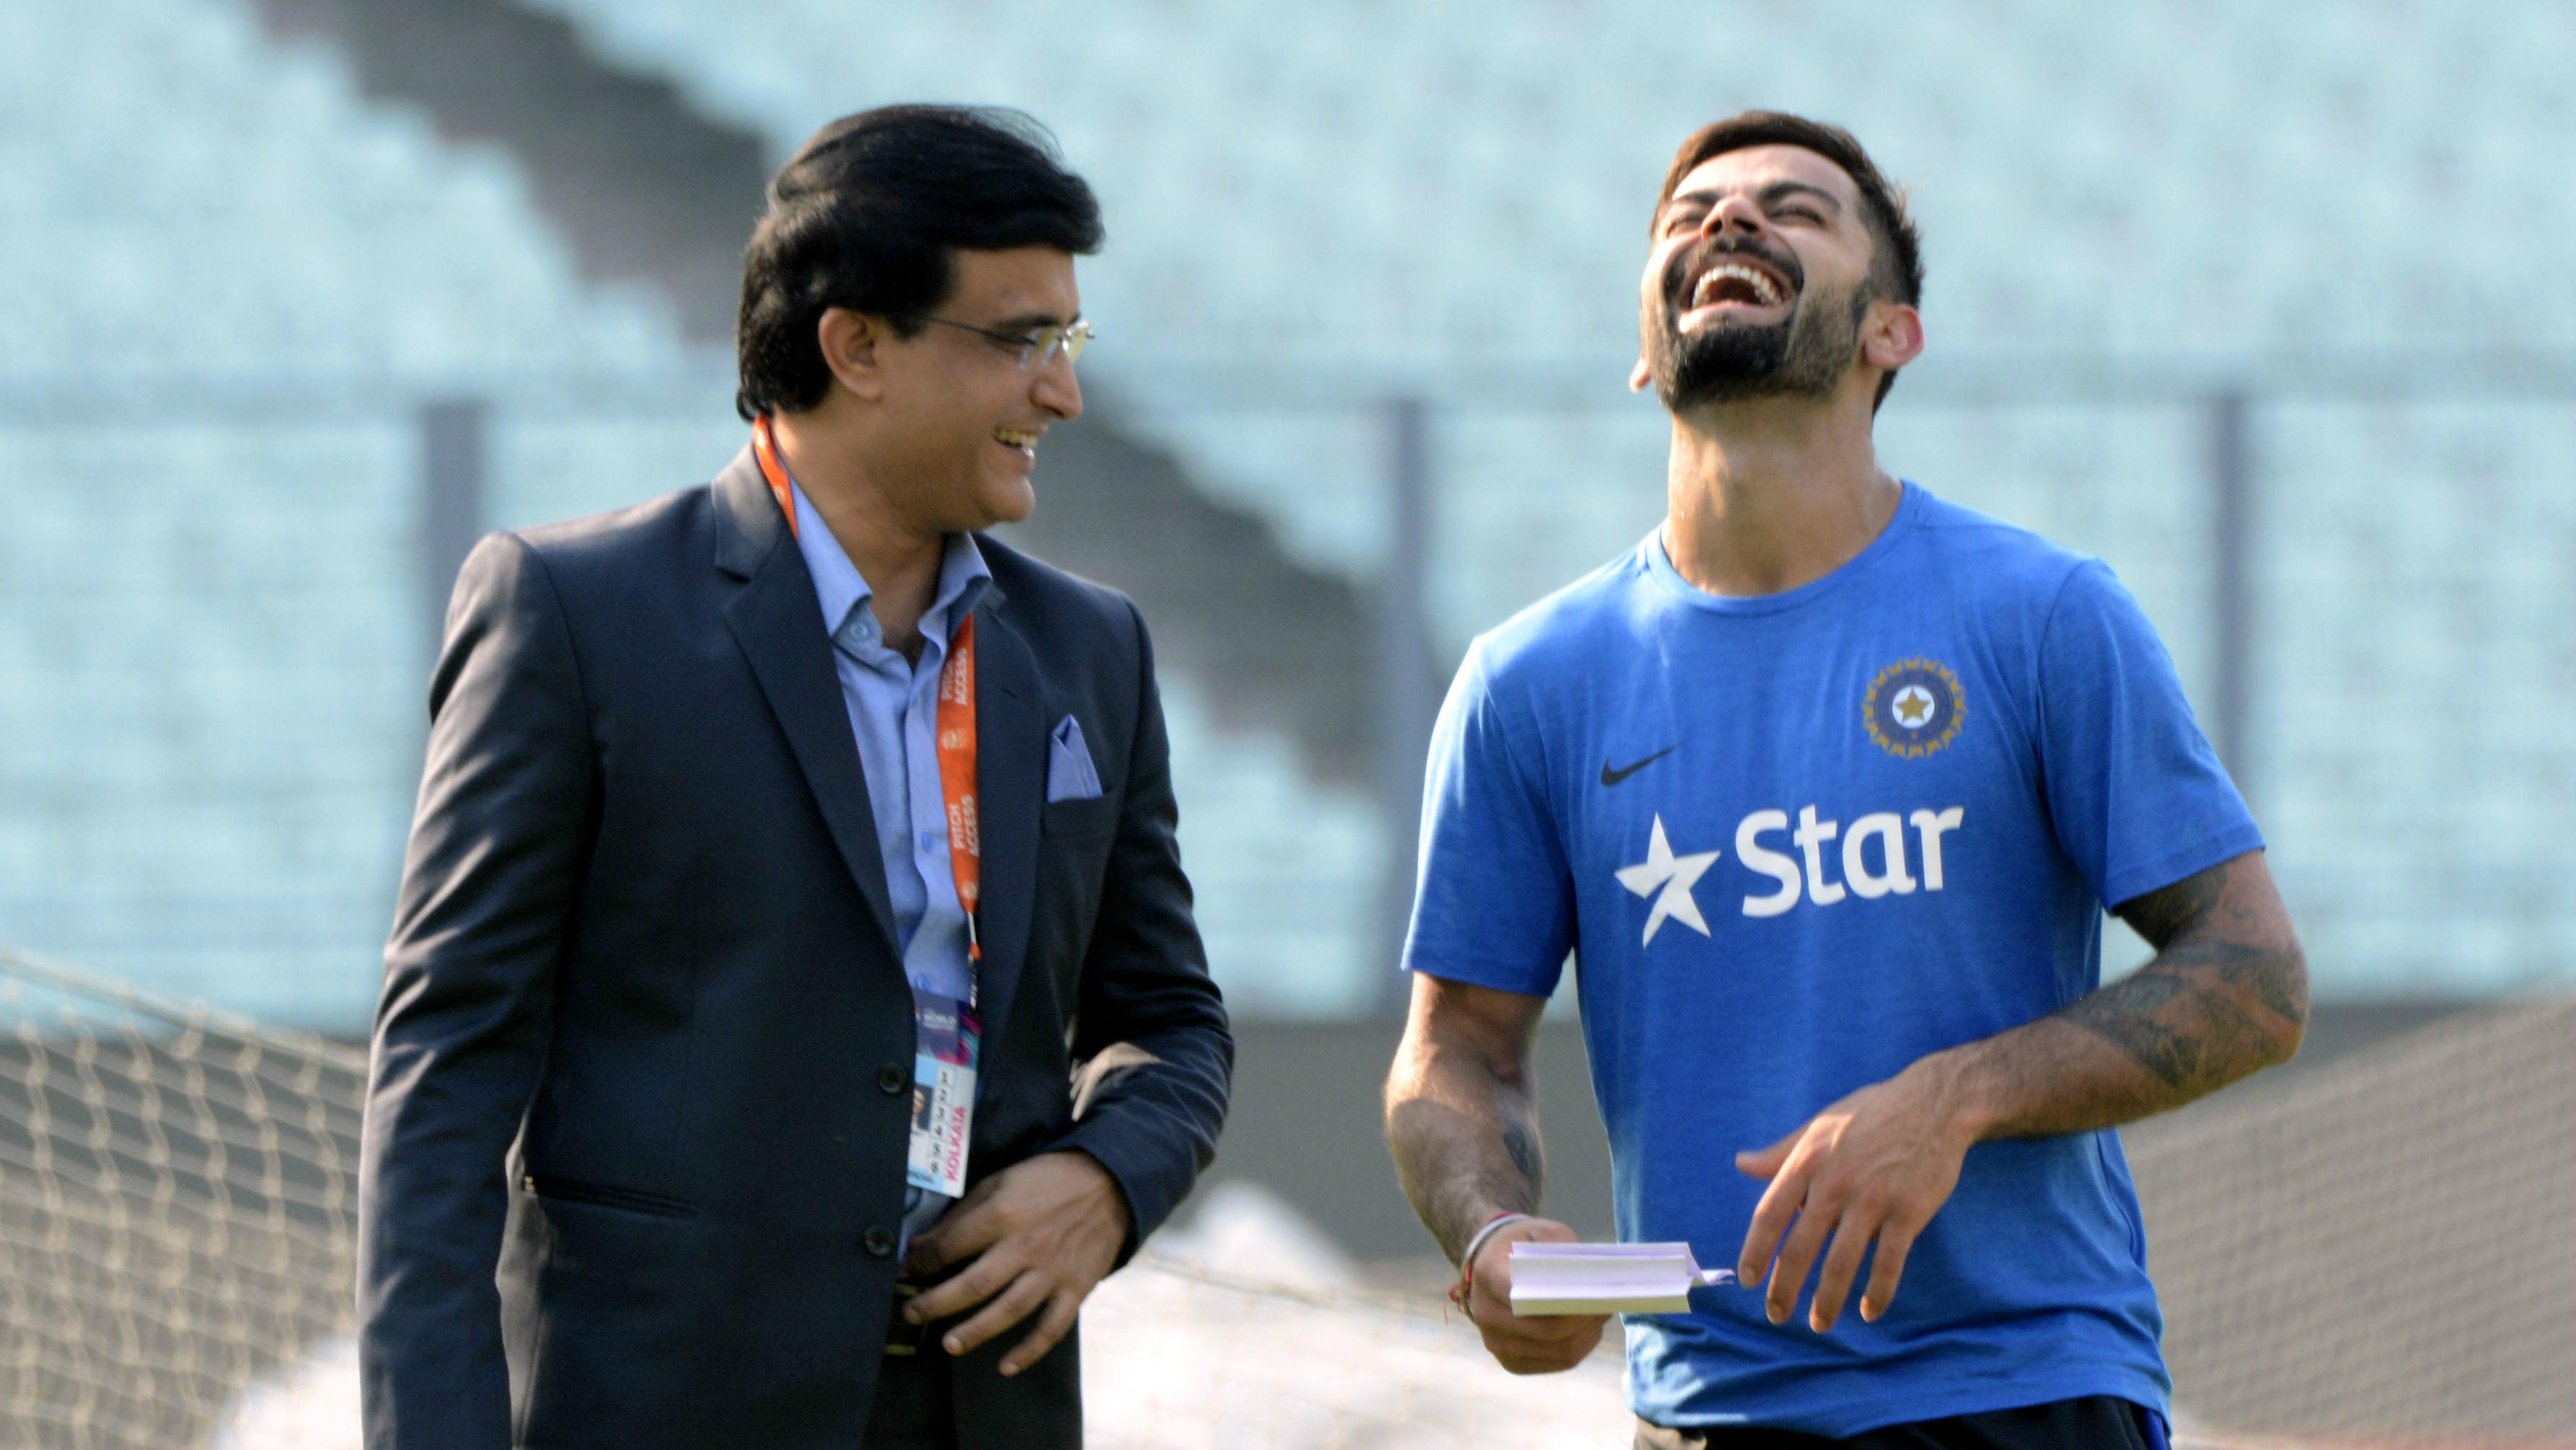 Sourav Ganguly and Virat Kohli - two captains who sculpted Indian cricket team as we know